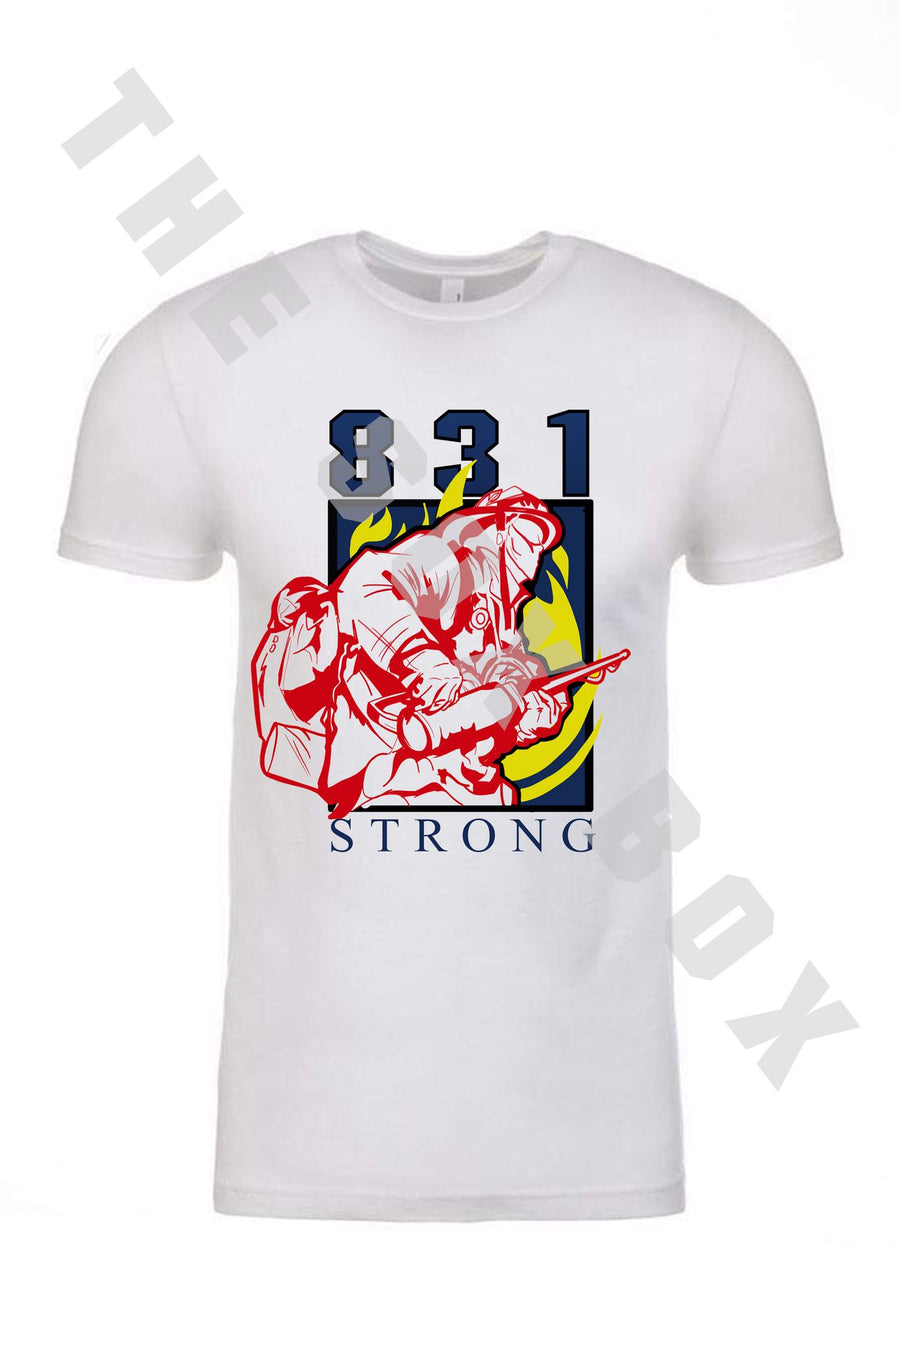 831 Strong Fire Relief Fund Shirt (Male FF) - LIMITED EDITION